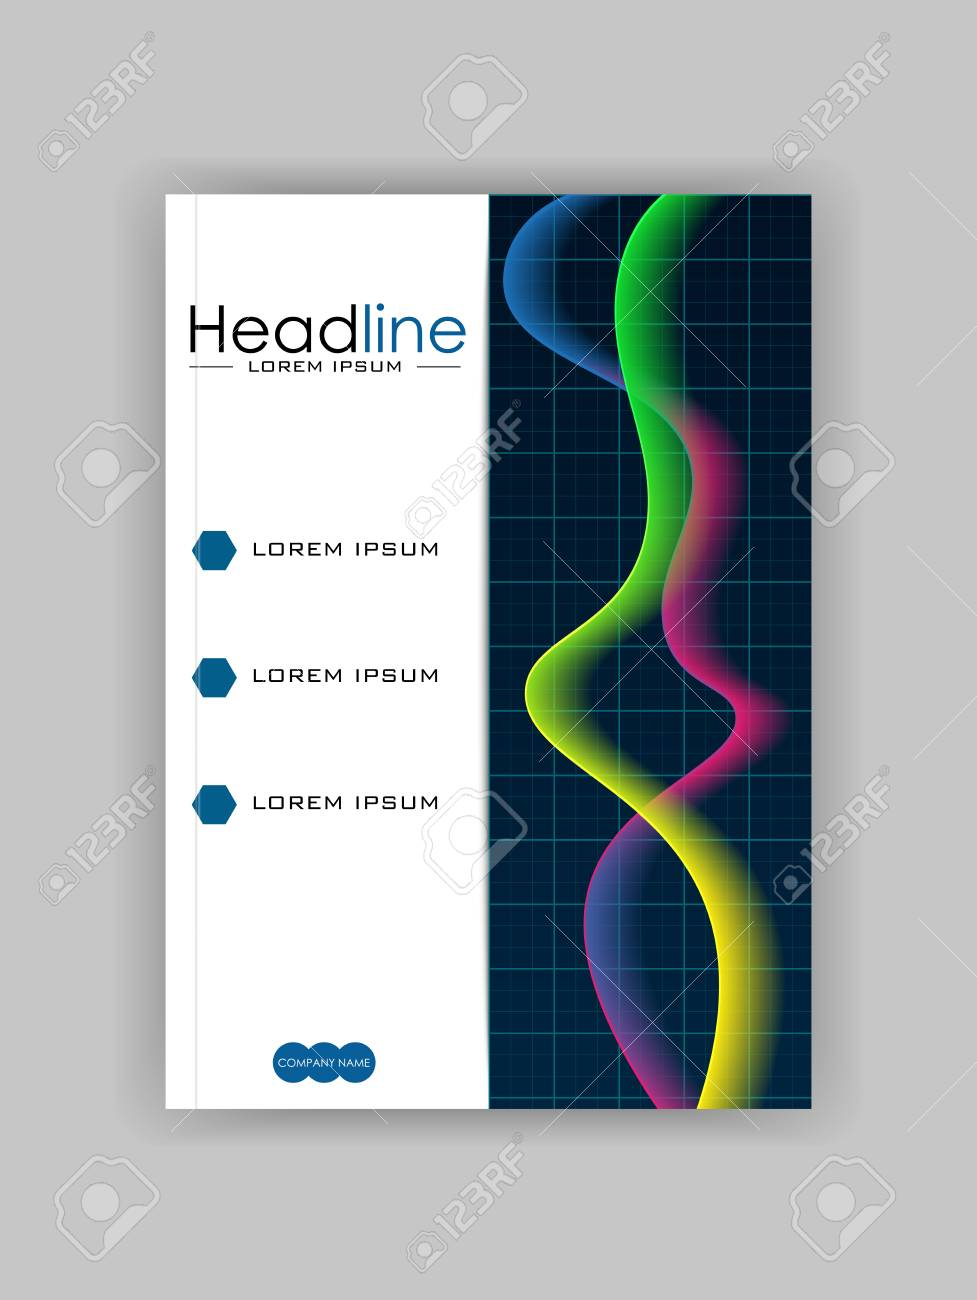 Glowing diagram book cover design with colourful waves good glowing diagram book cover design with colourful waves good for annual report conference ccuart Gallery